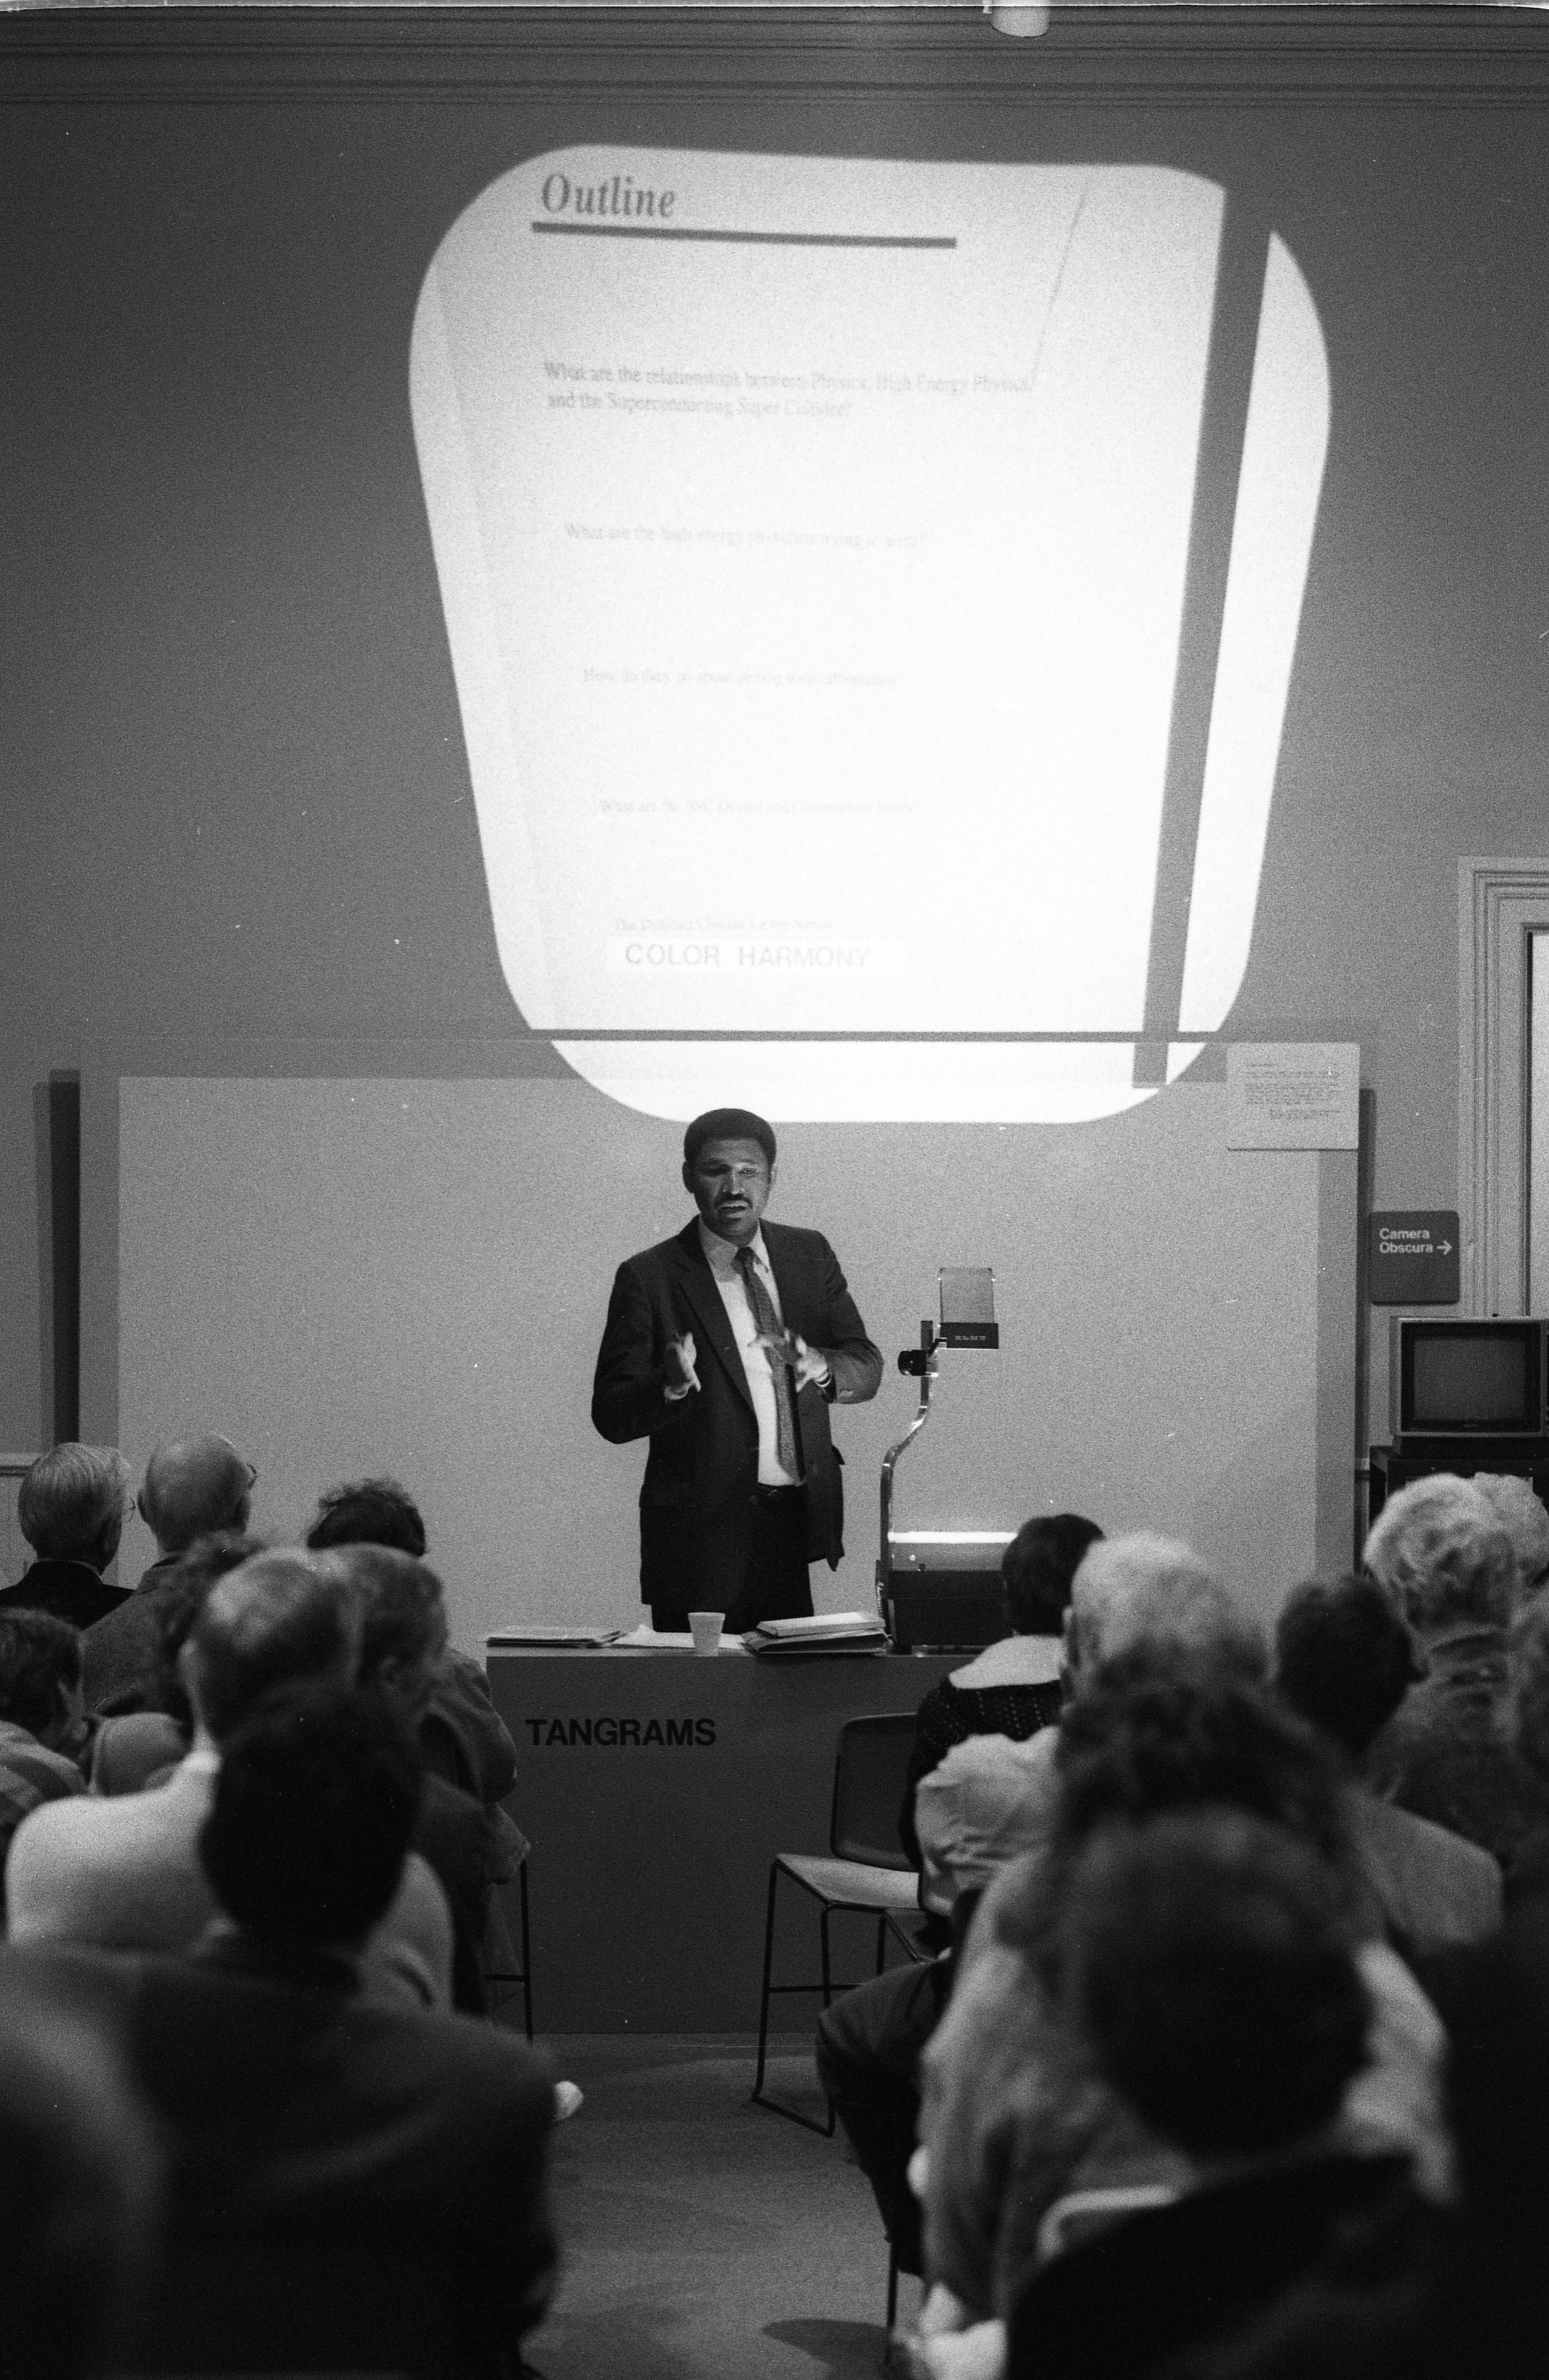 Homer Neal Speaking Engagement At Ann Arbor Hands-On Museum, October 1988 image